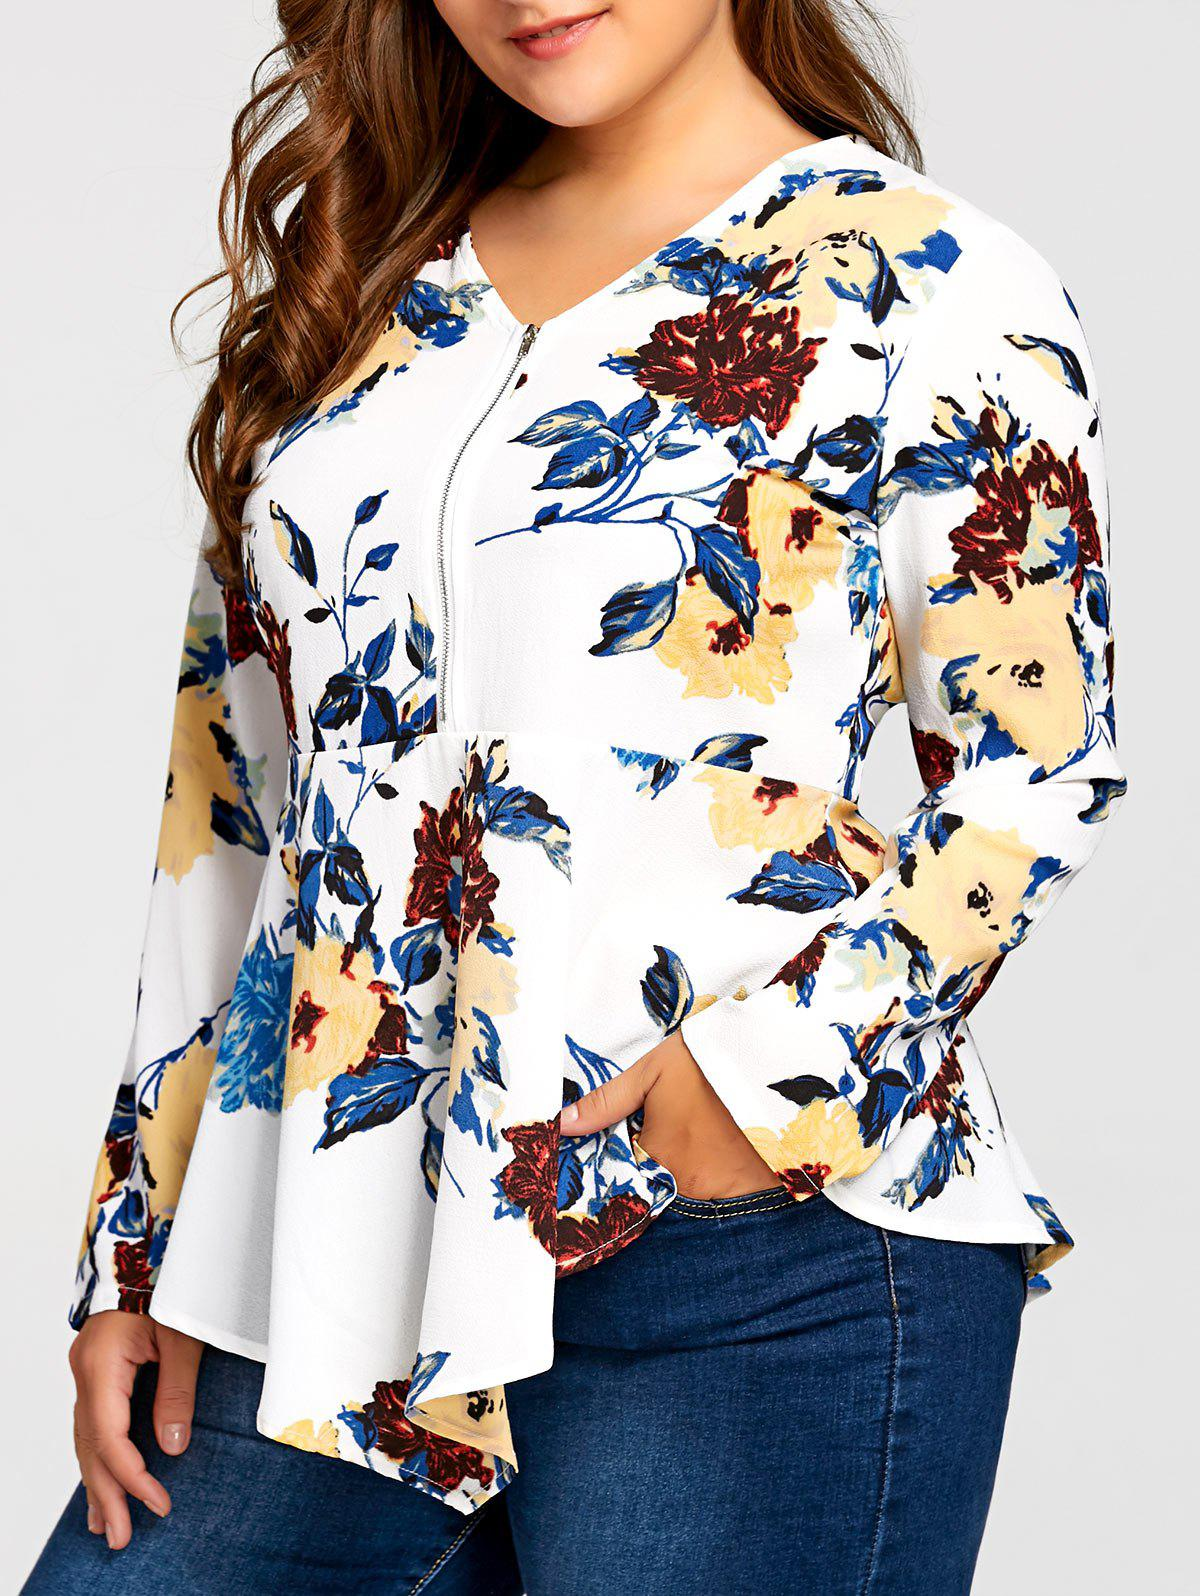 Plus Size Asymmetric Half Zipper Floral Long Sleeve BlouseWOMEN<br><br>Size: 2XL; Color: WHITE; Material: Polyester; Shirt Length: Long; Sleeve Length: Full; Collar: V-Neck; Style: Casual; Season: Fall,Spring; Embellishment: Zippers; Pattern Type: Floral; Weight: 0.2300kg; Package Contents: 1 x Blouse;